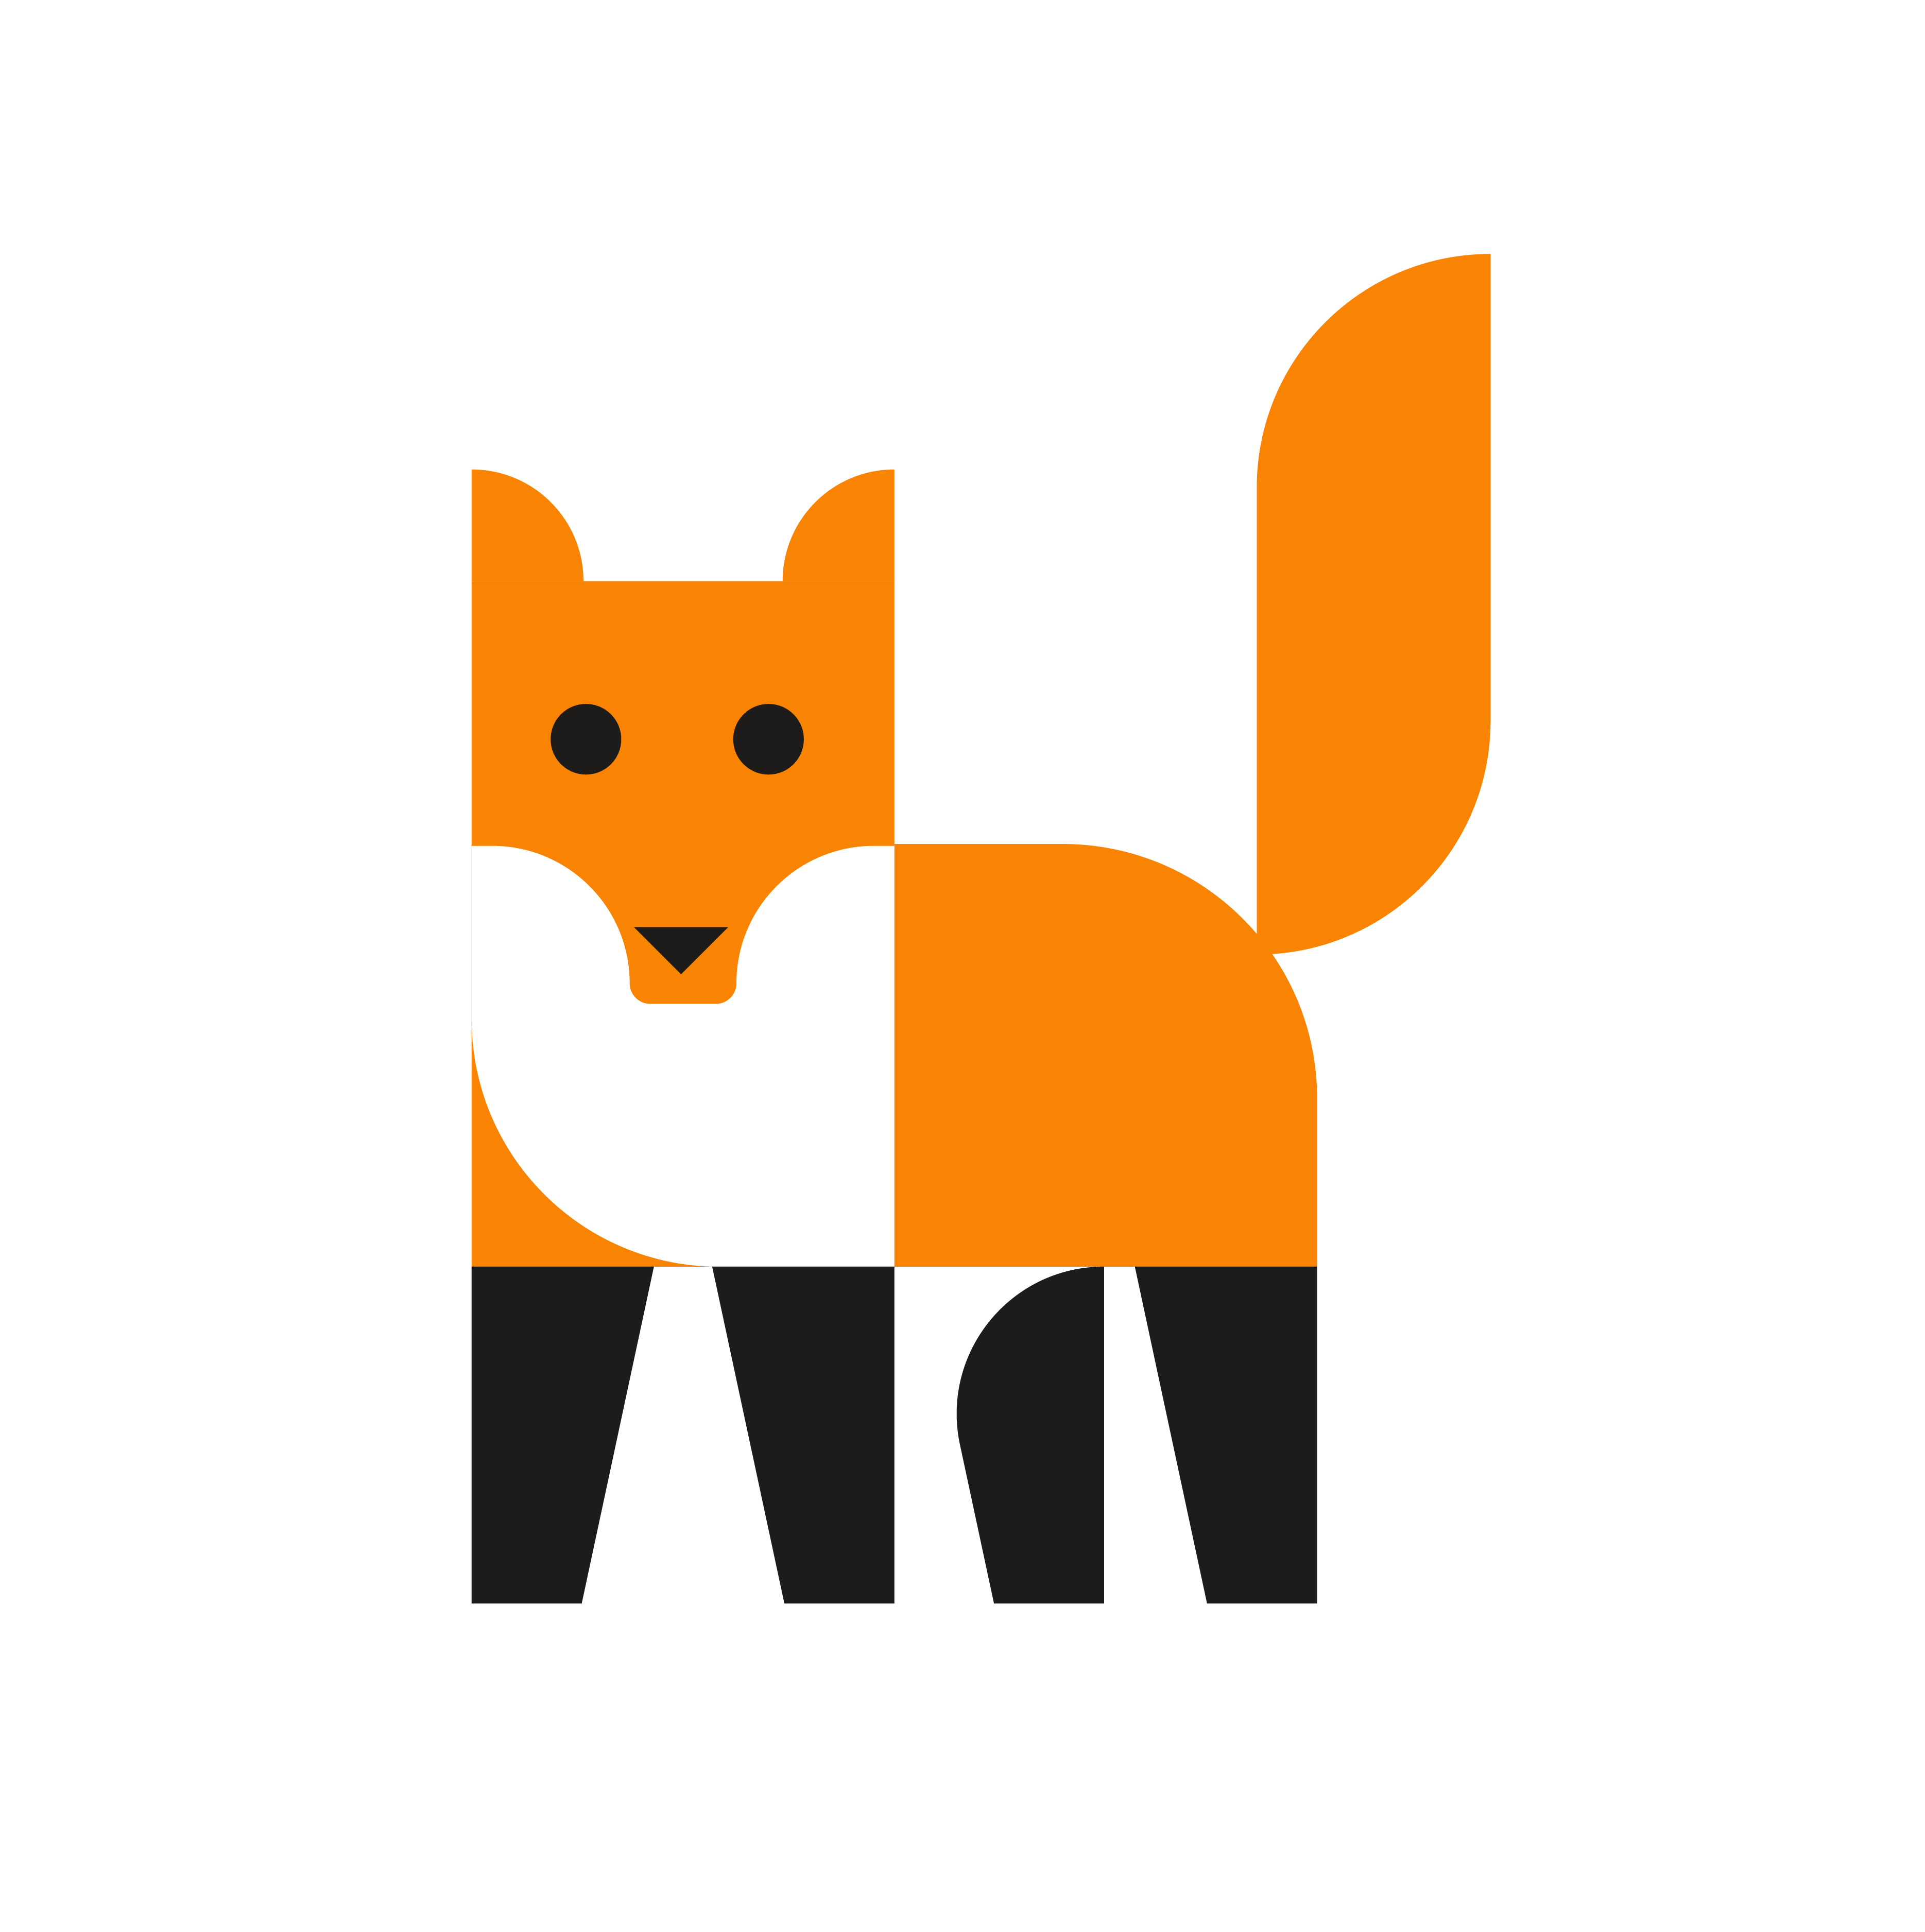 fox logo design by logo designer logorilla for your inspiration and for the worlds largest logo competition